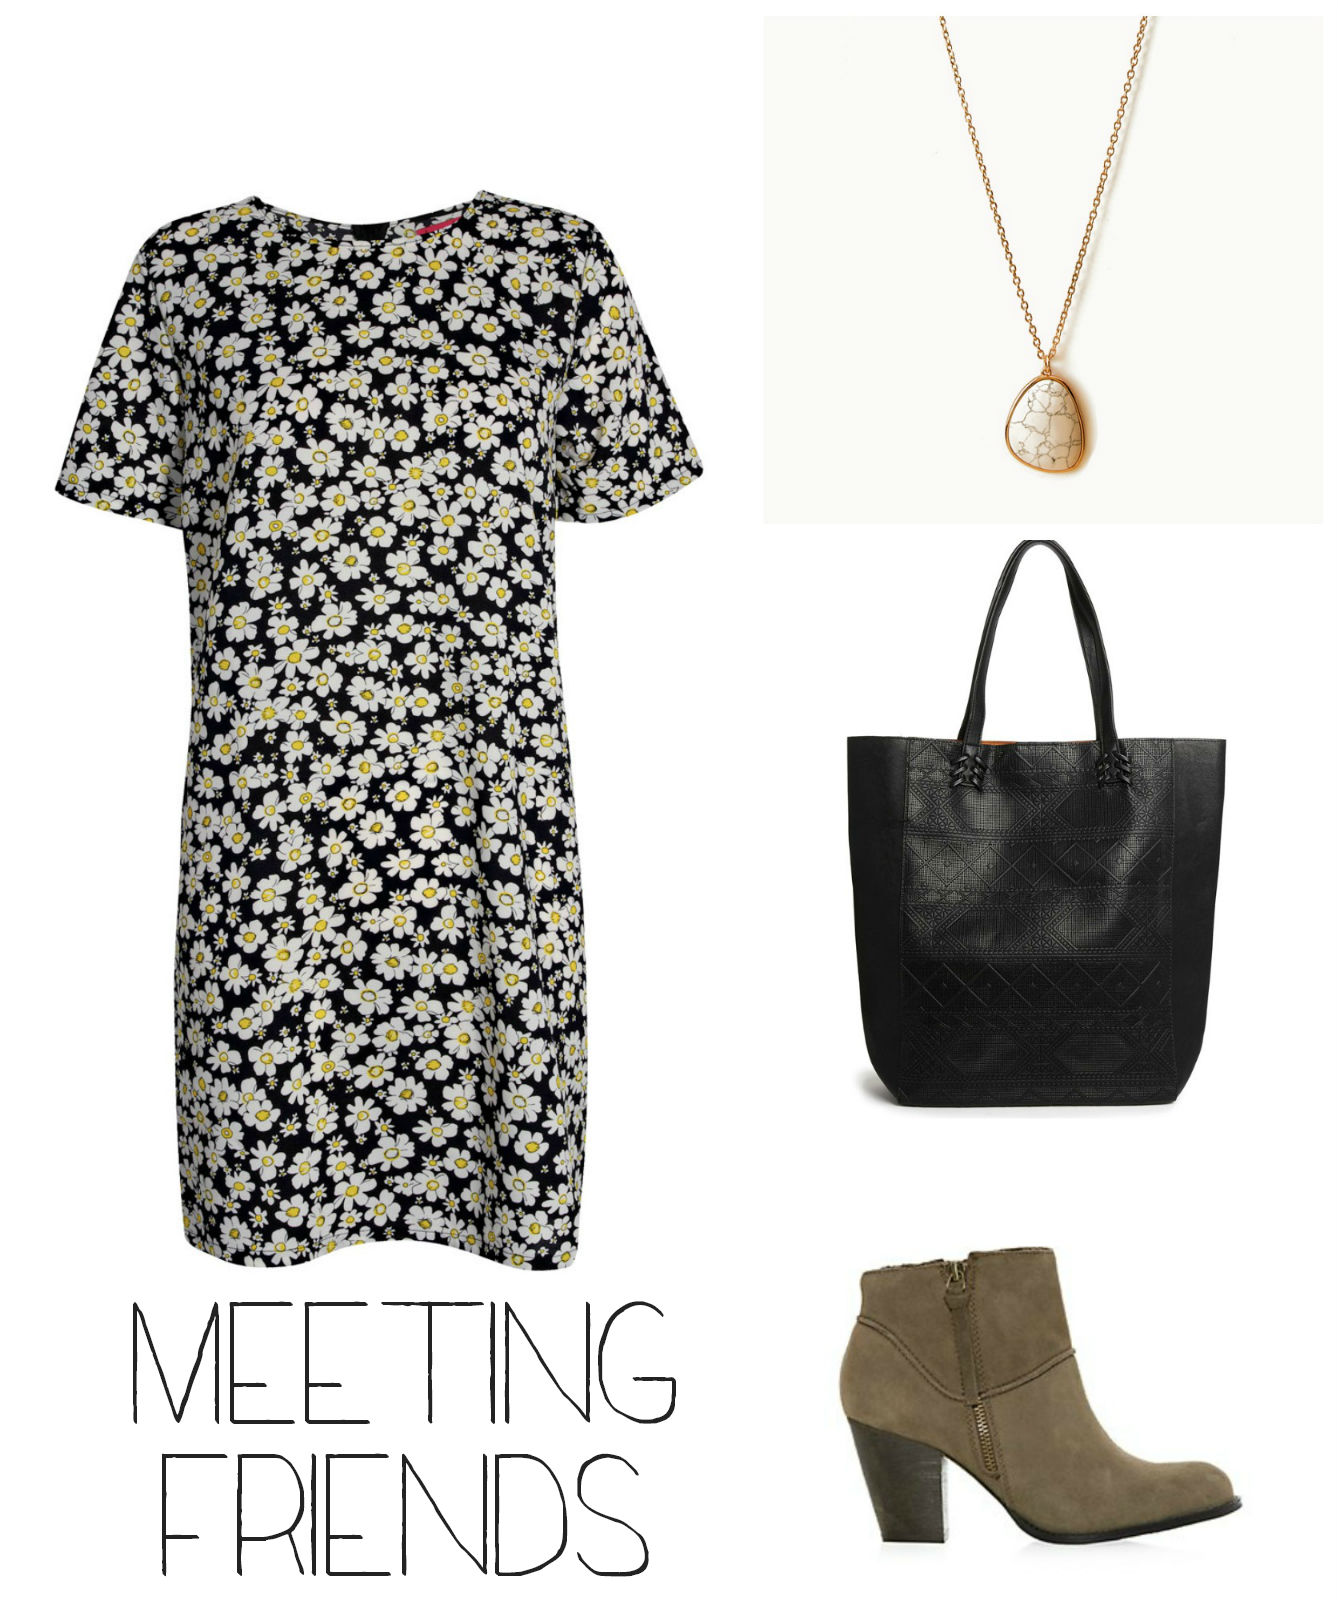 Outfit for meeting friends with shift dress